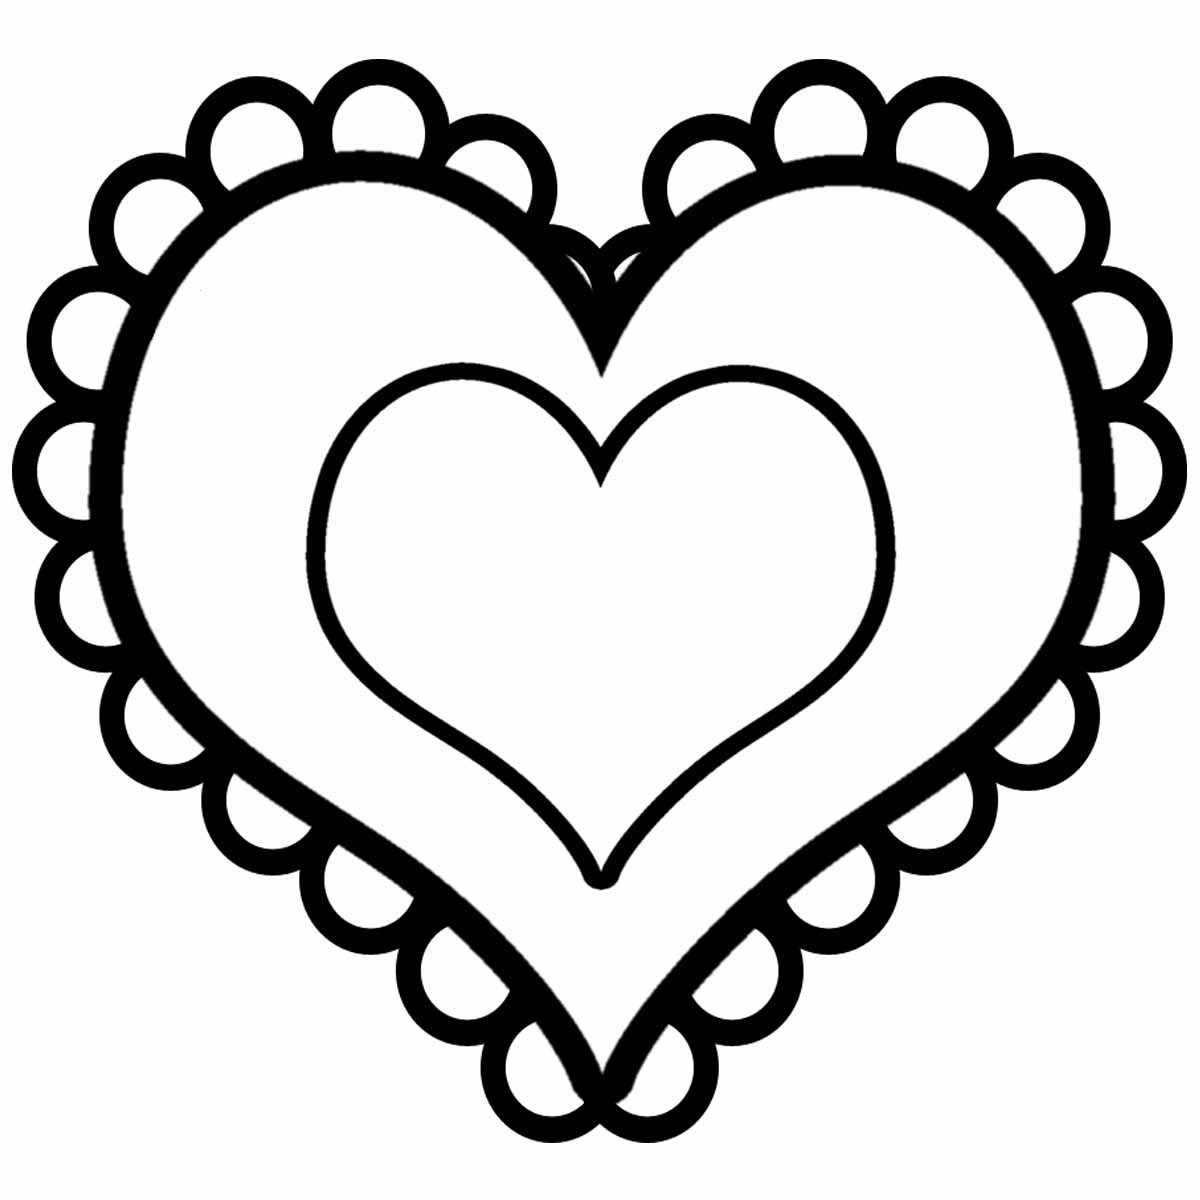 hearts coloring pictures free printable heart coloring pages for kids pictures hearts coloring 1 1